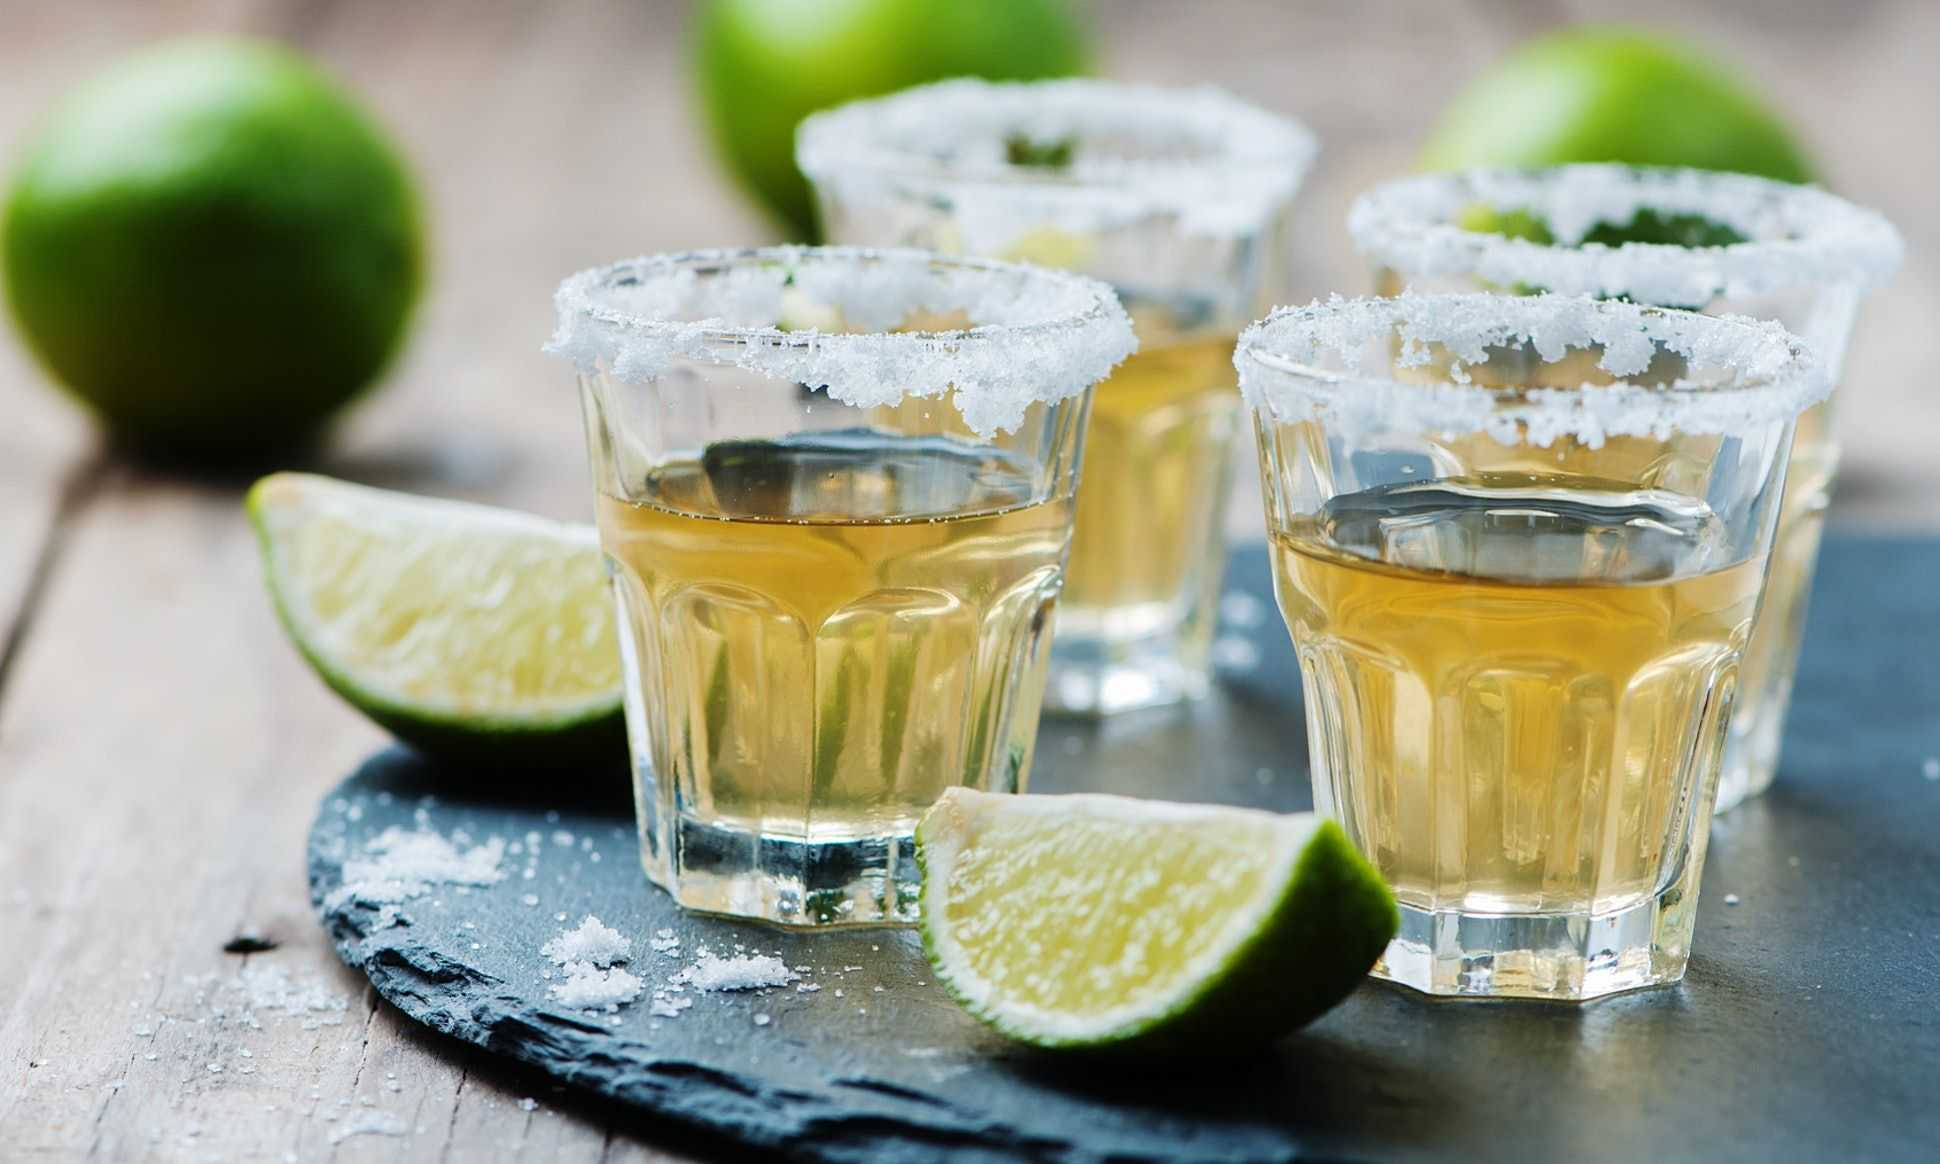 Global Massive Growth Of Tequila Market 2019-2025 By Top Key Players Like Centinela, Campo Azul, Avion Tequila, Buen Amigo, Cabo Tequila, Juarez, Don Julio. – Market Expert24 photo